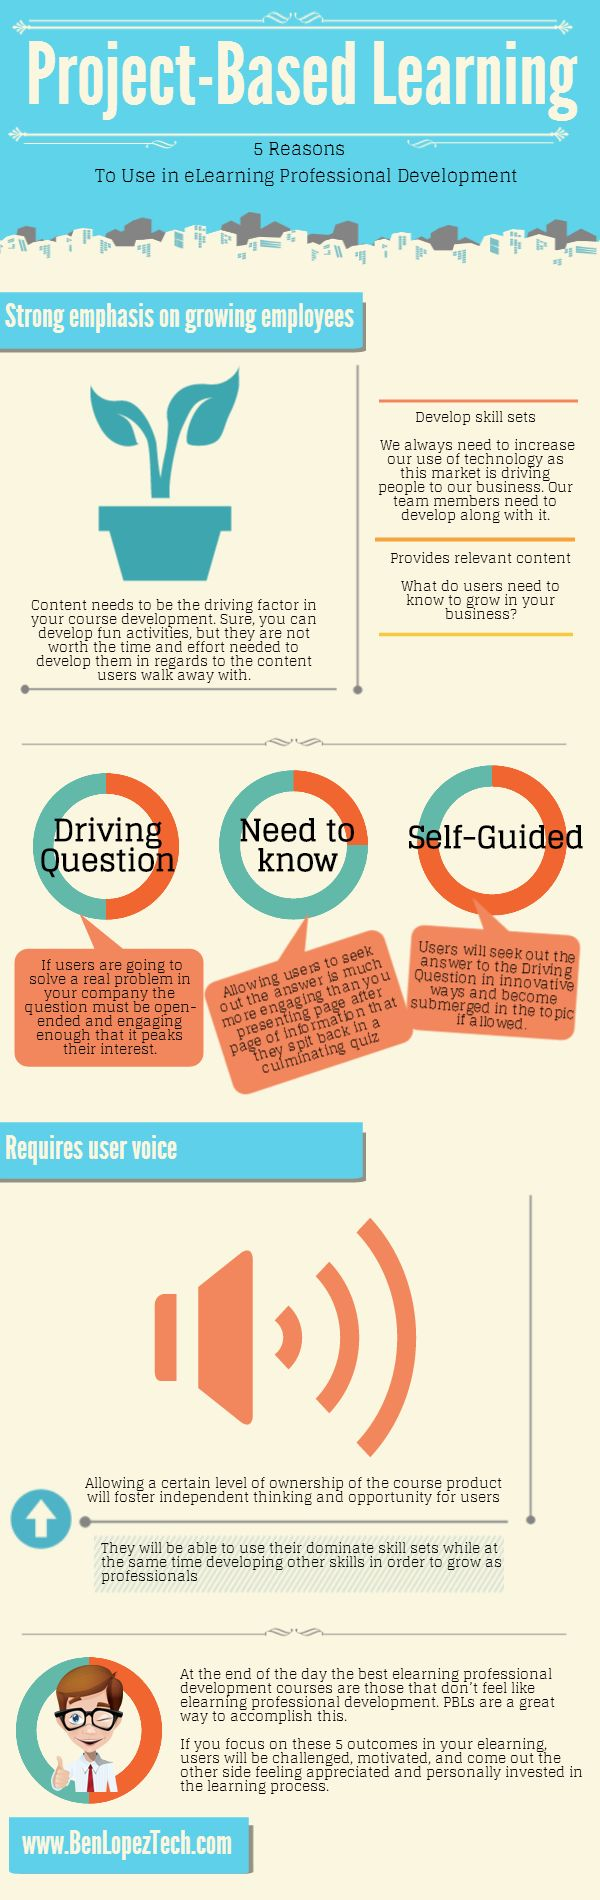 #infografía 5-Reasons-to-Use-Project-Based-Learning-in-elearning-Professional-Development-Infographic